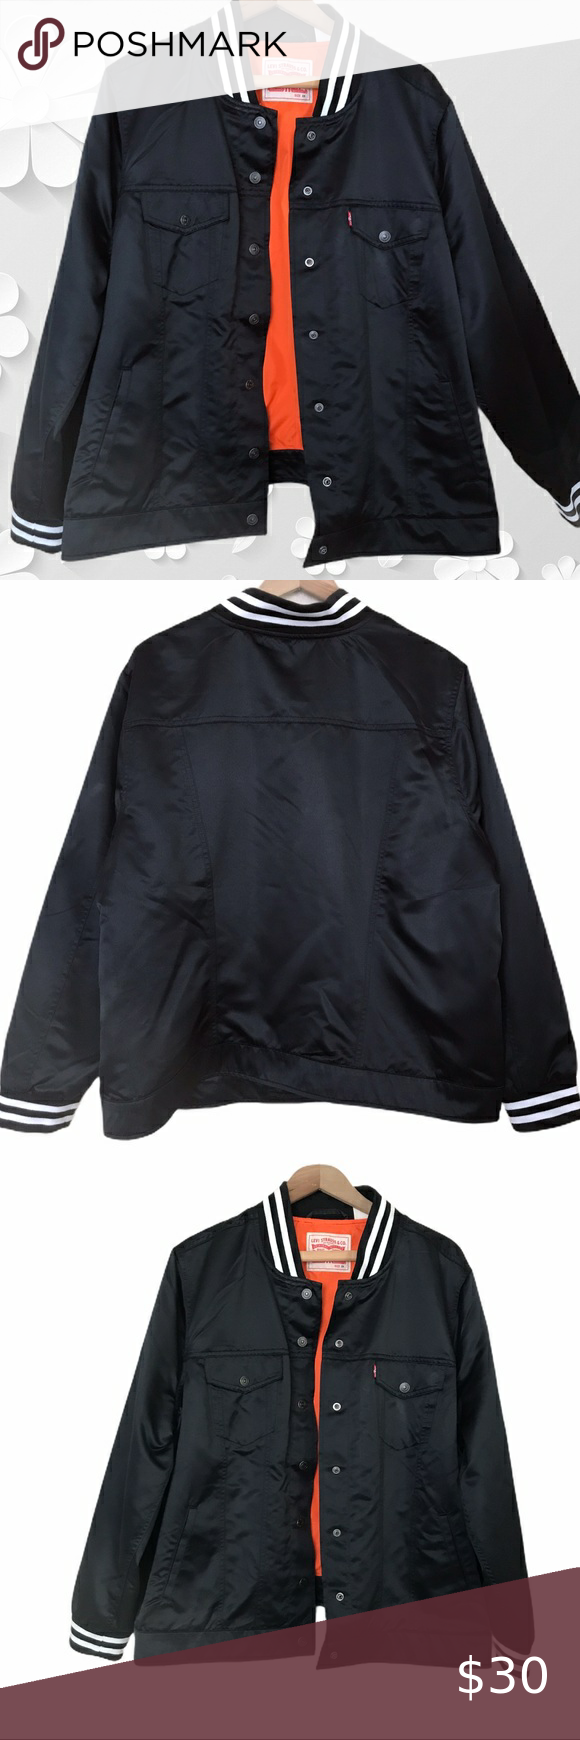 Levi S Black Bomber Jacket Black Bomber Jacket Size 2x Preowned In Good Condition Pit To Pit 25 Sho Bomber Jacket Black Bomber Jacket Black Bomber [ 1740 x 580 Pixel ]